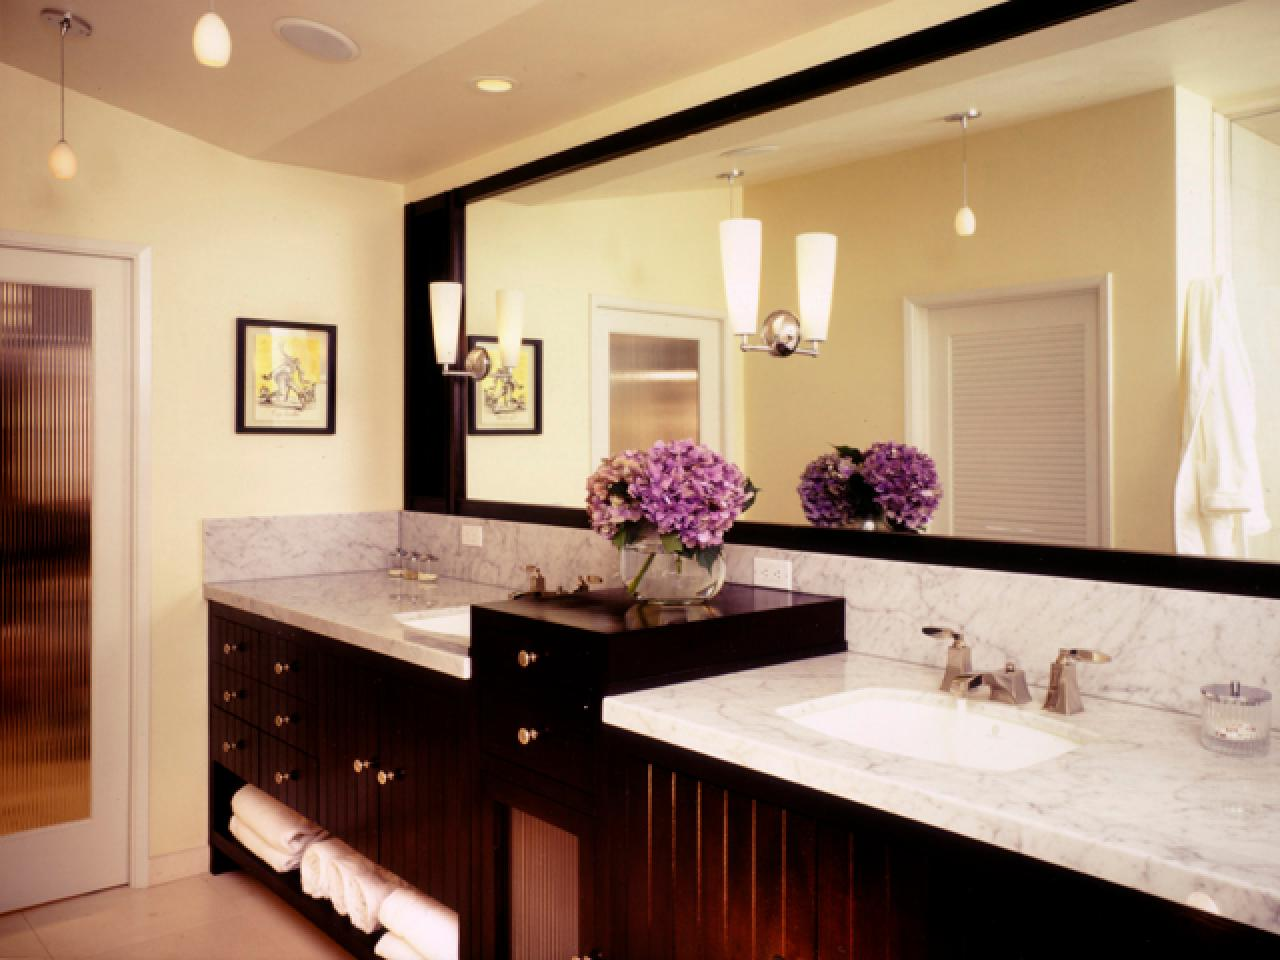 Lighting For Bathrooms Custom Designing Bathroom Lighting  Hgtv Inspiration Design